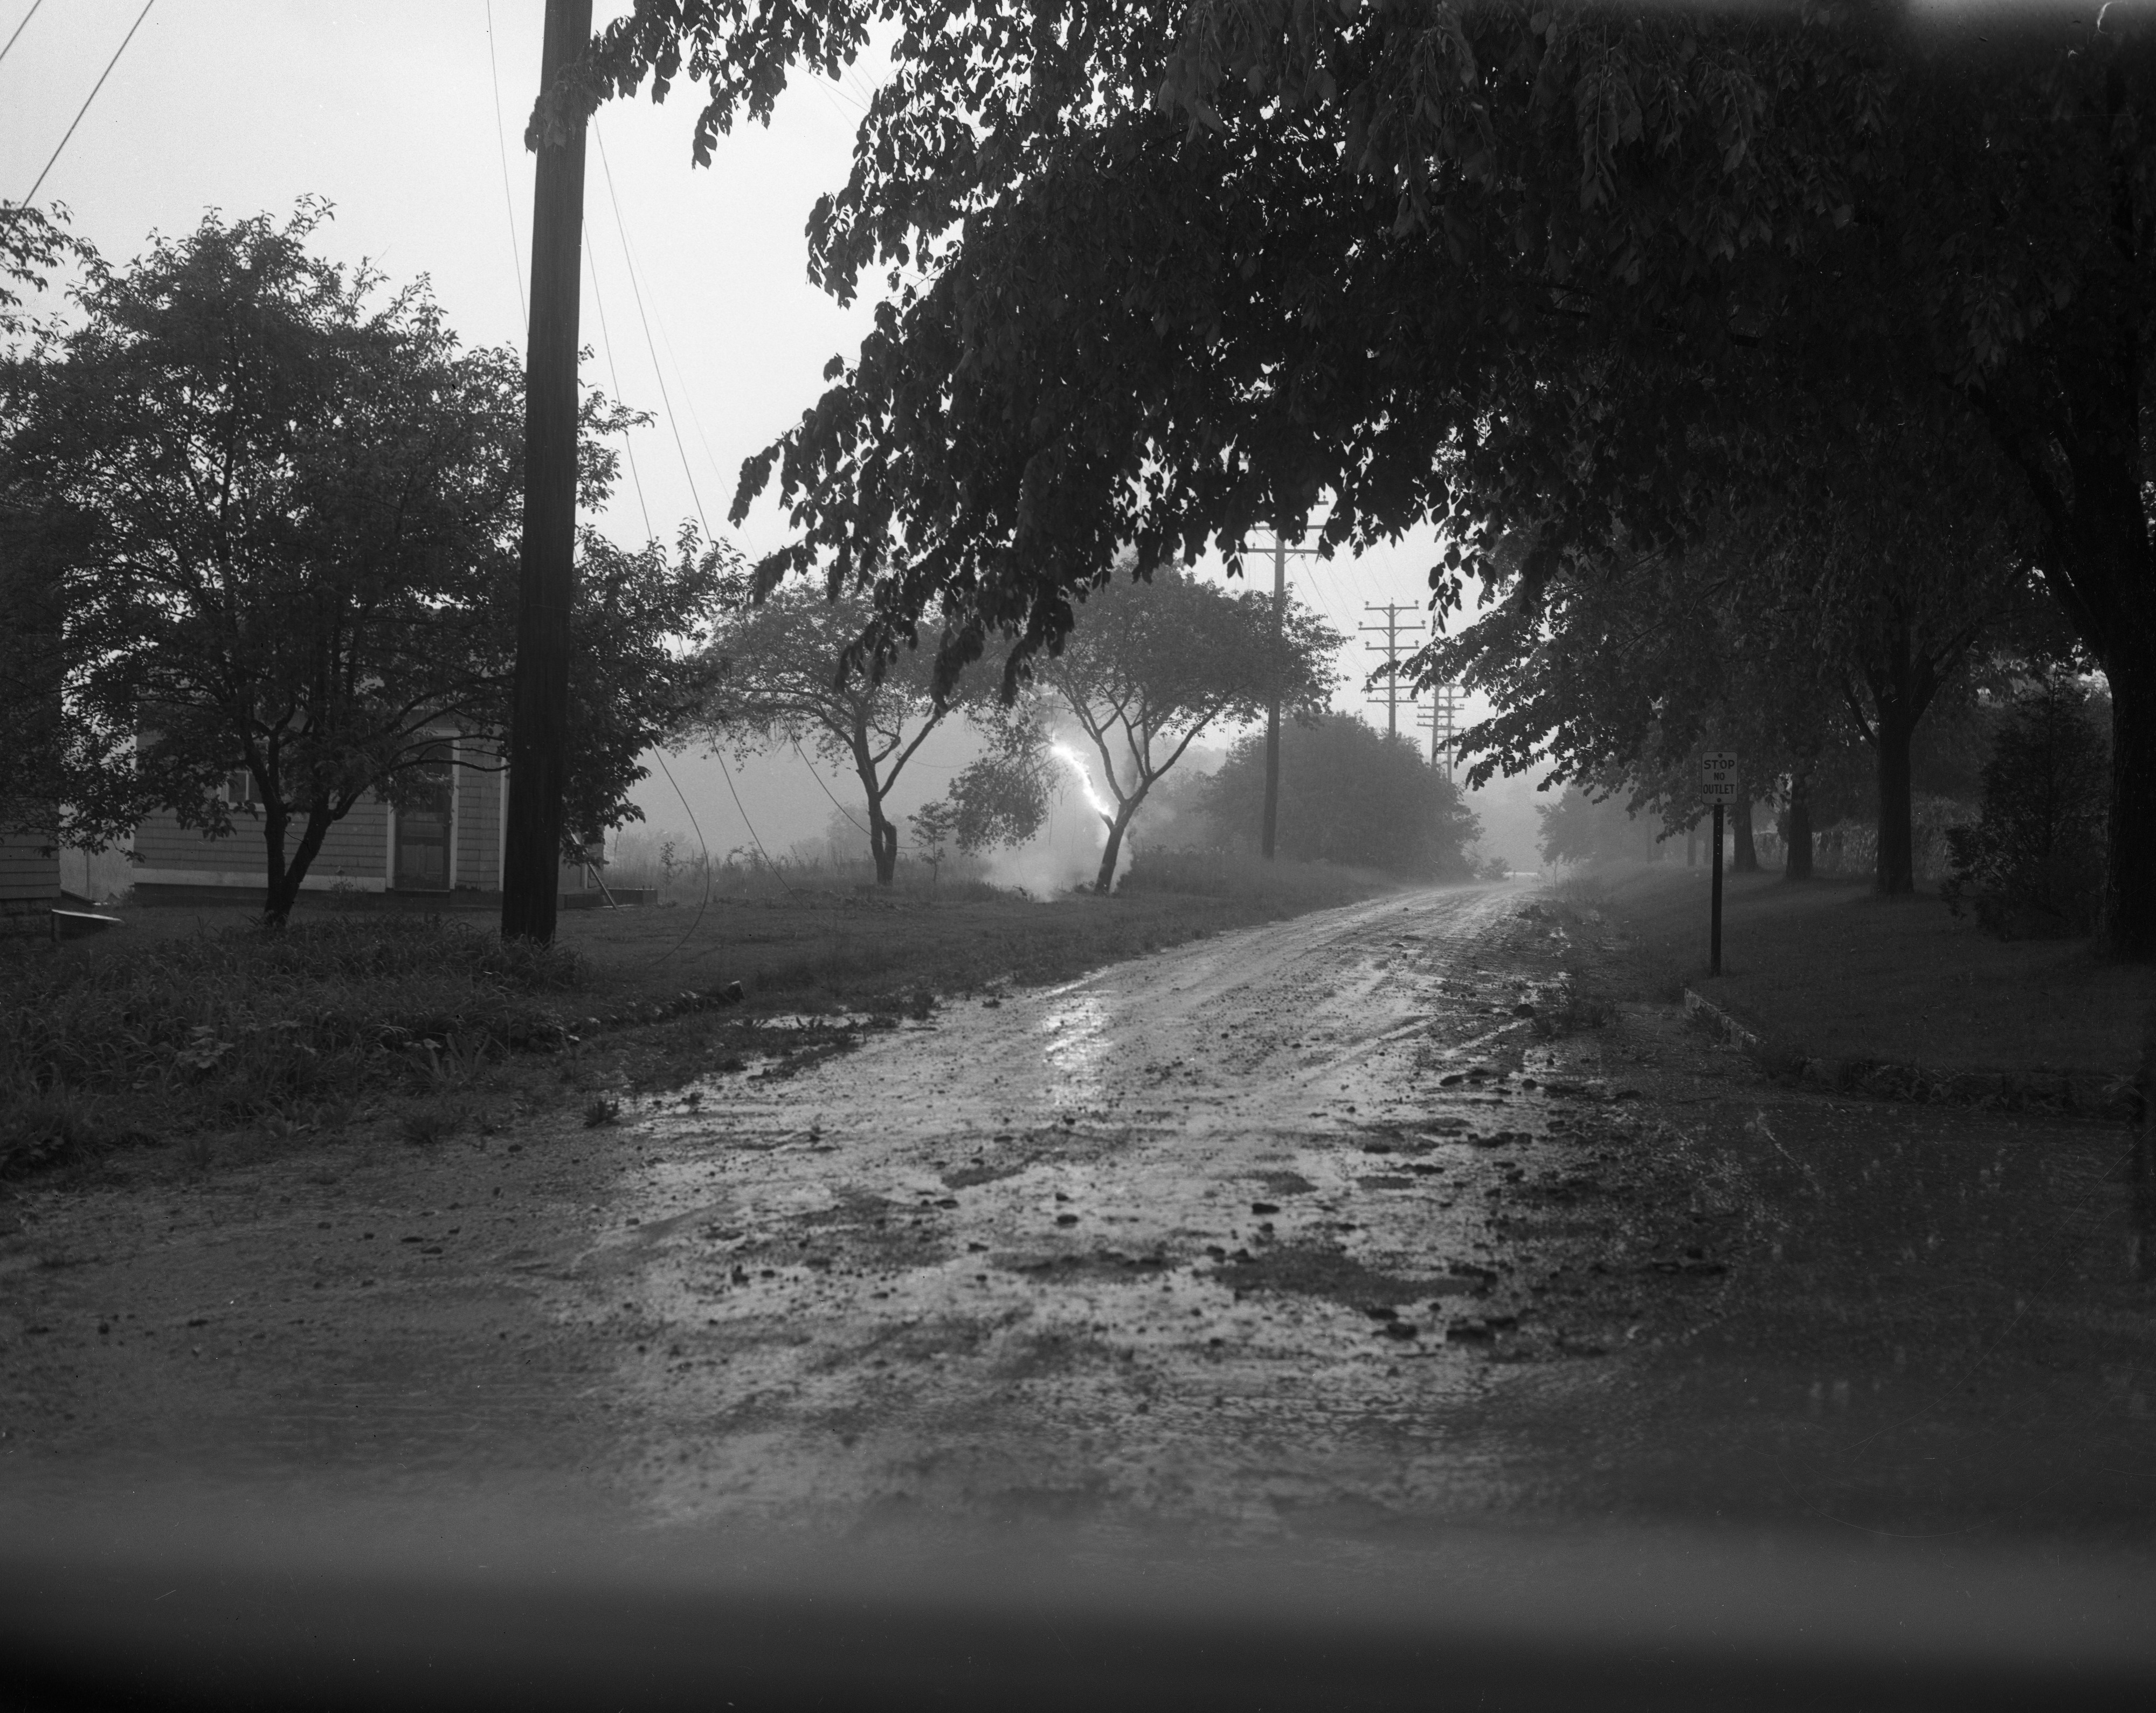 Smoldering Ground Where Lightning Hit Near Kellogg And Wright Streets During Storm, June 1954 image